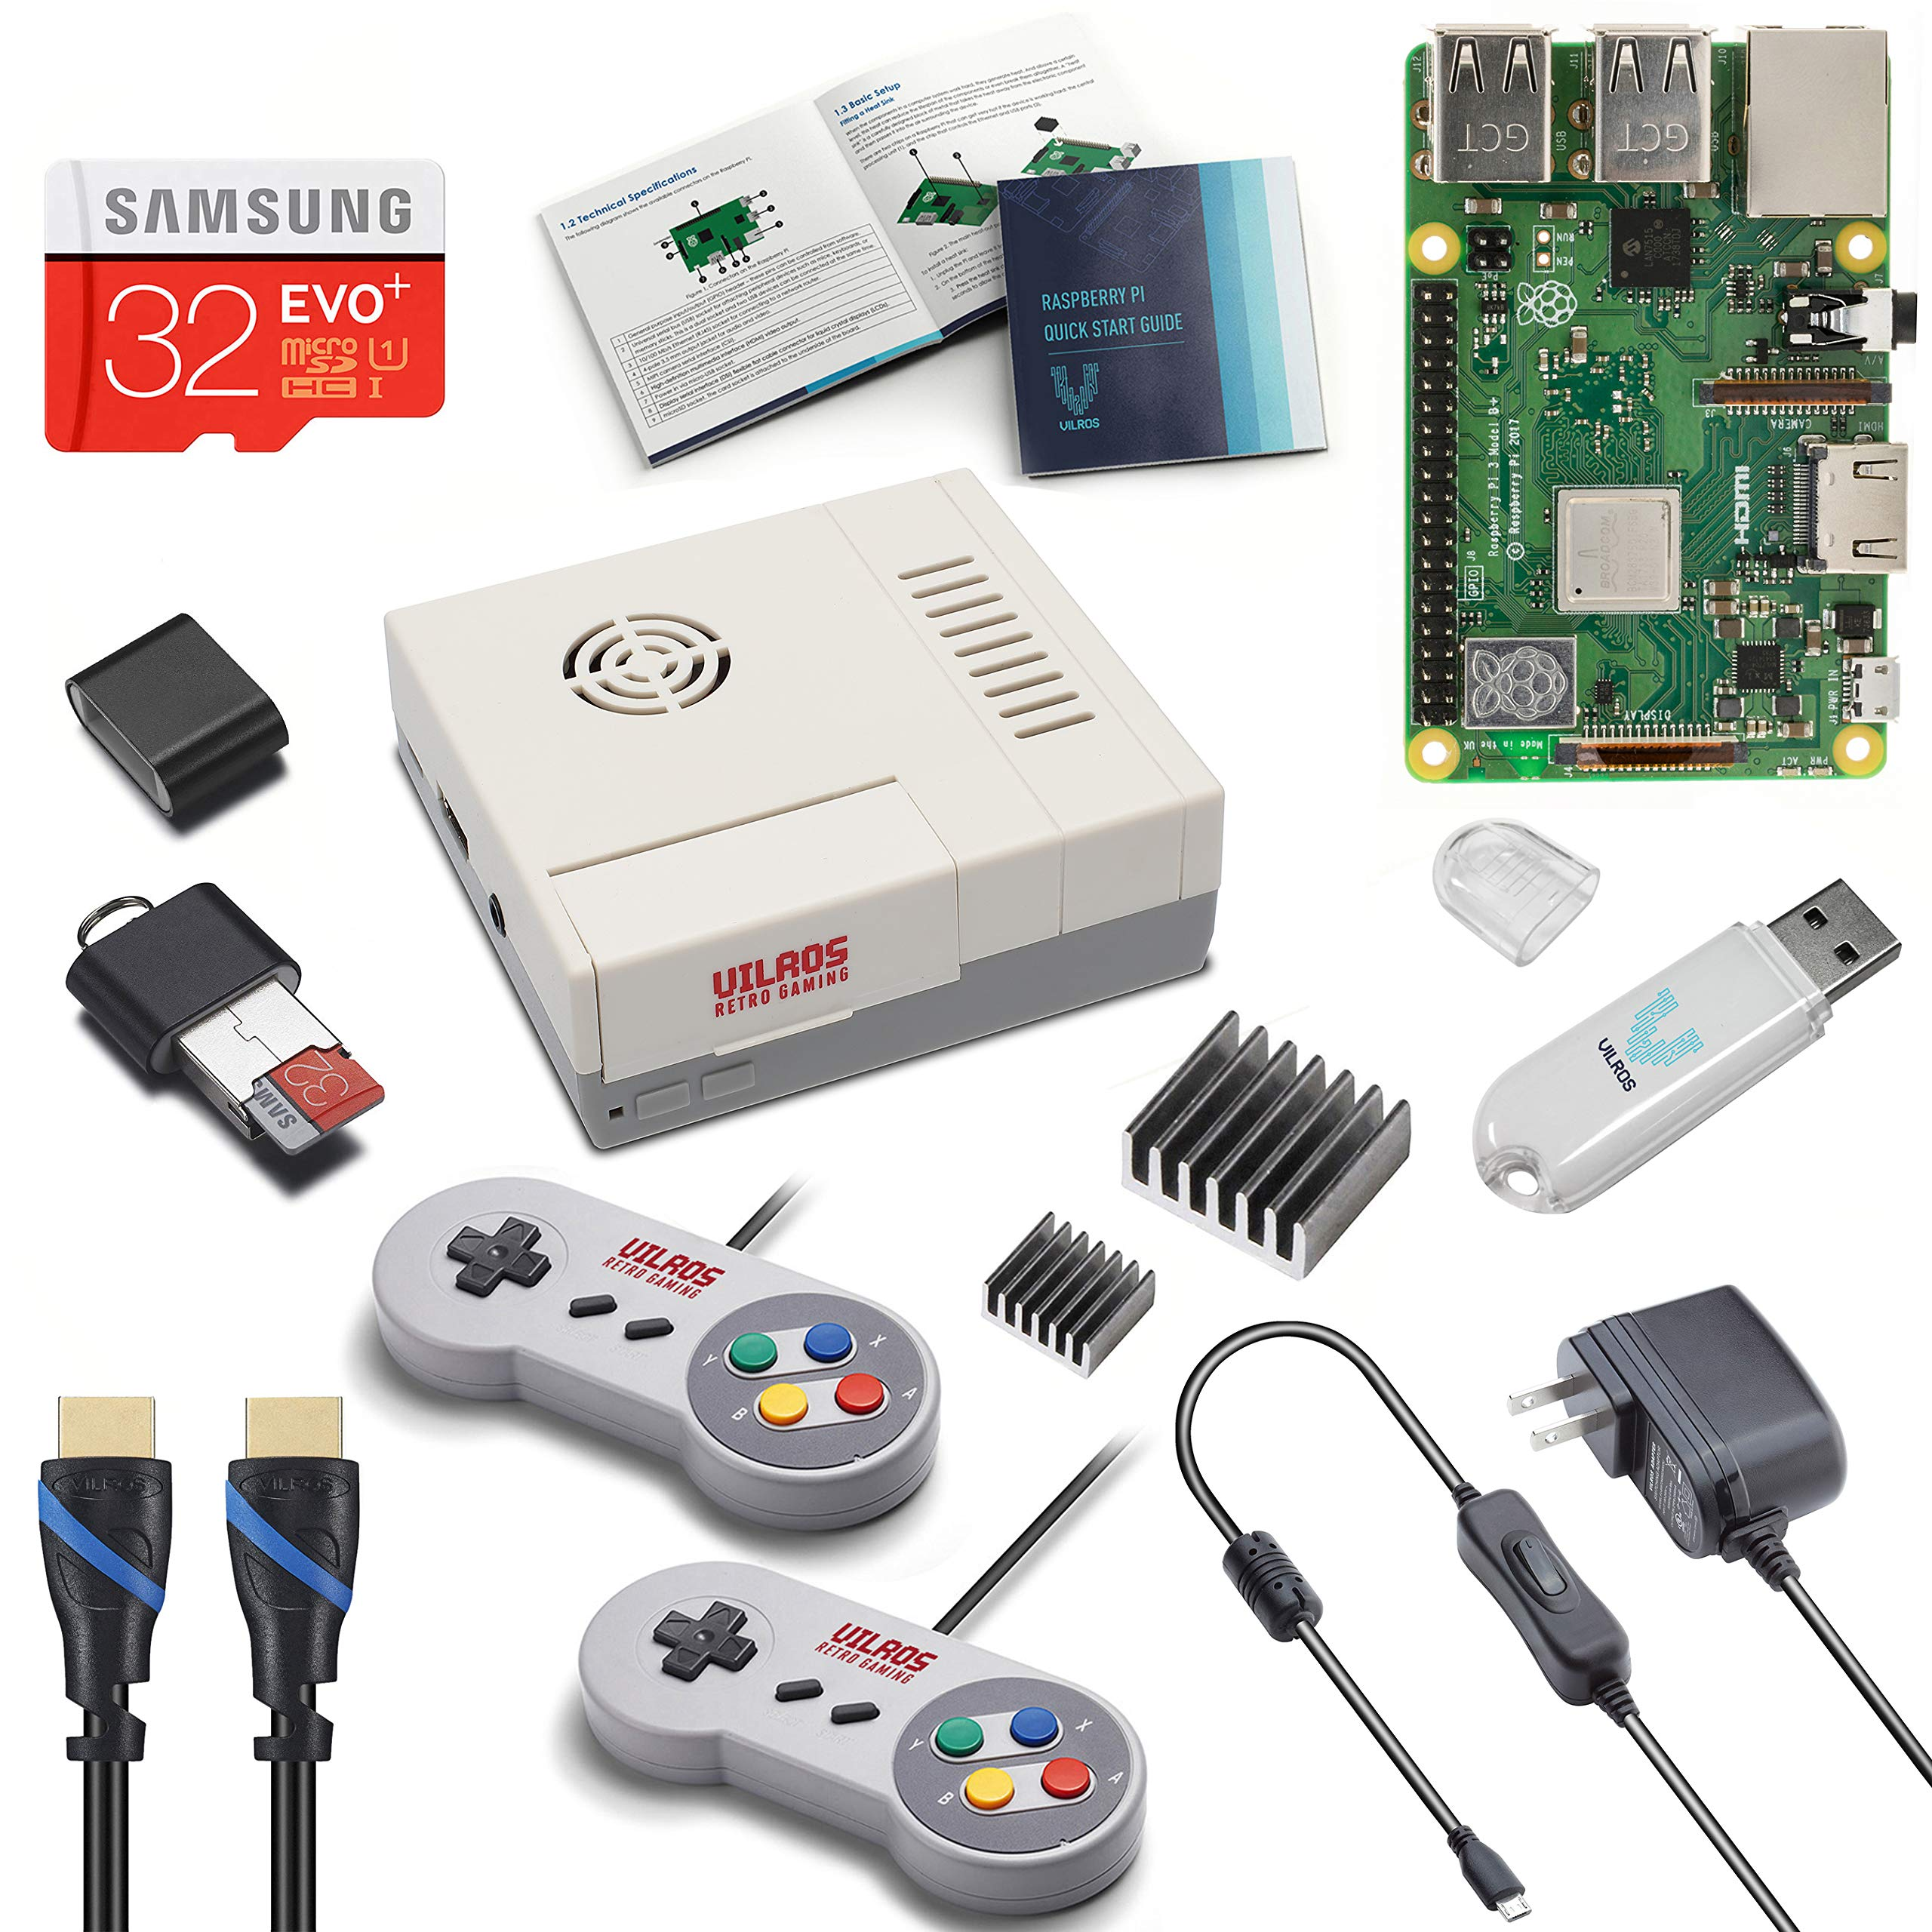 Vilros Raspberry Pi 3 Model B+ (B Plus) Retro Arcade Gaming Kit with 2 Gamepads & Fan-Cooled Retro Gaming Case by Vilros